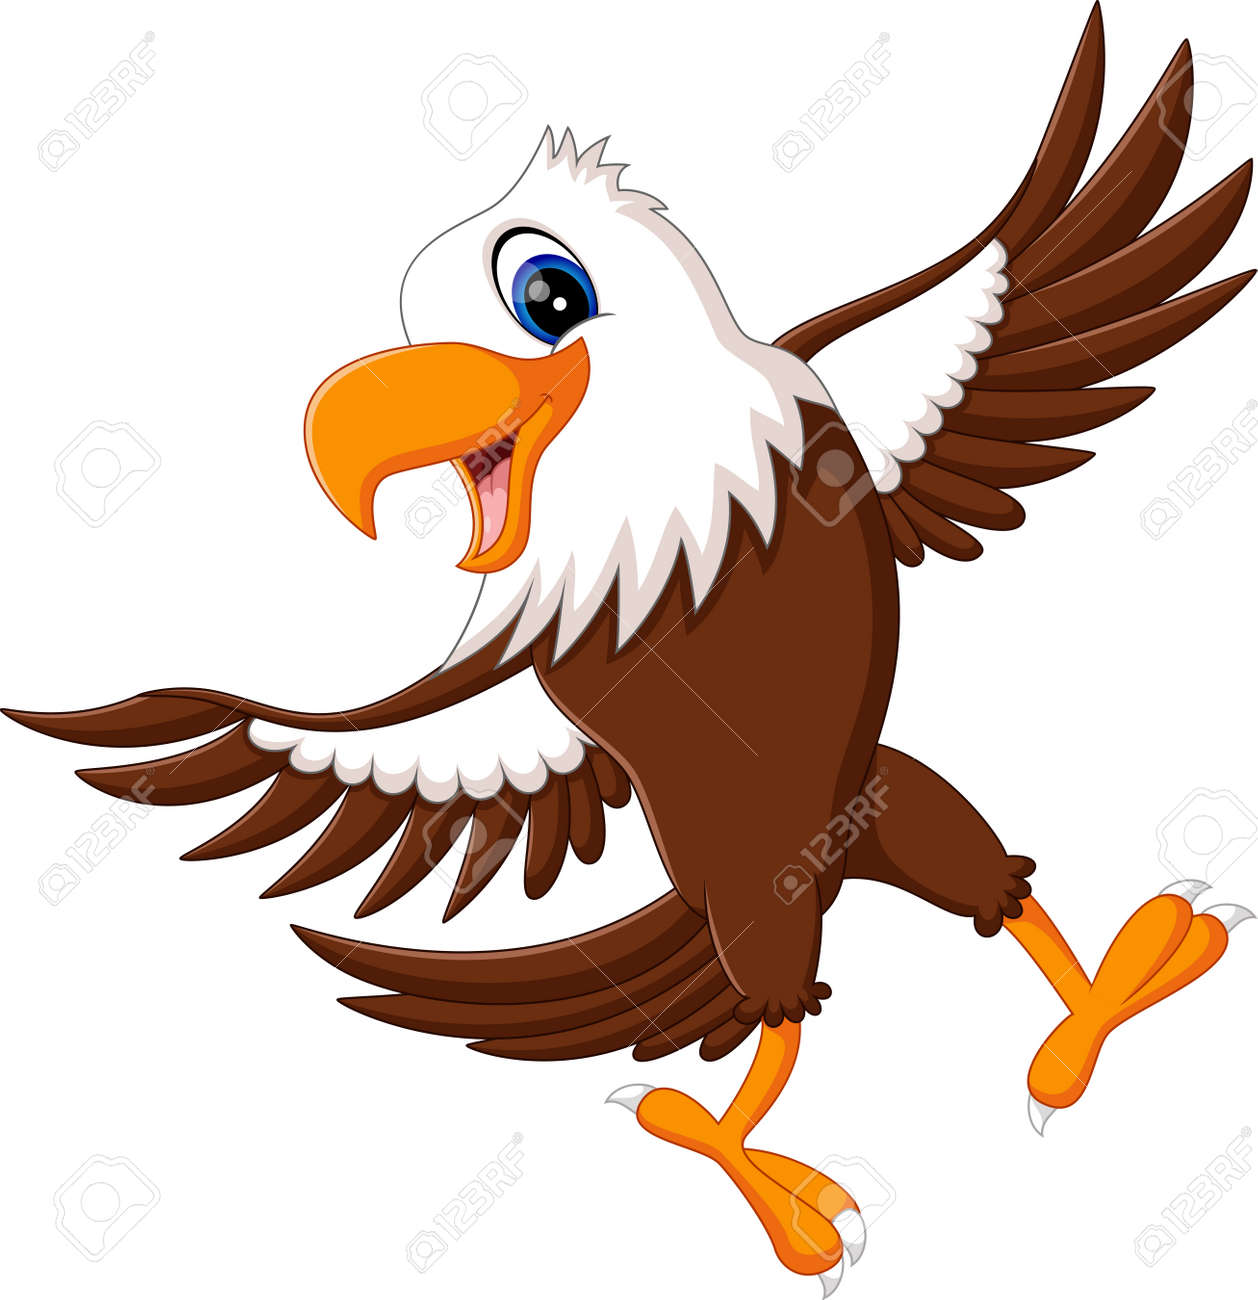 cartoon bald eagle standing with wings extended stock photo picture rh 123rf com cartoon bald eagle cute cartoon bald eagle pictures